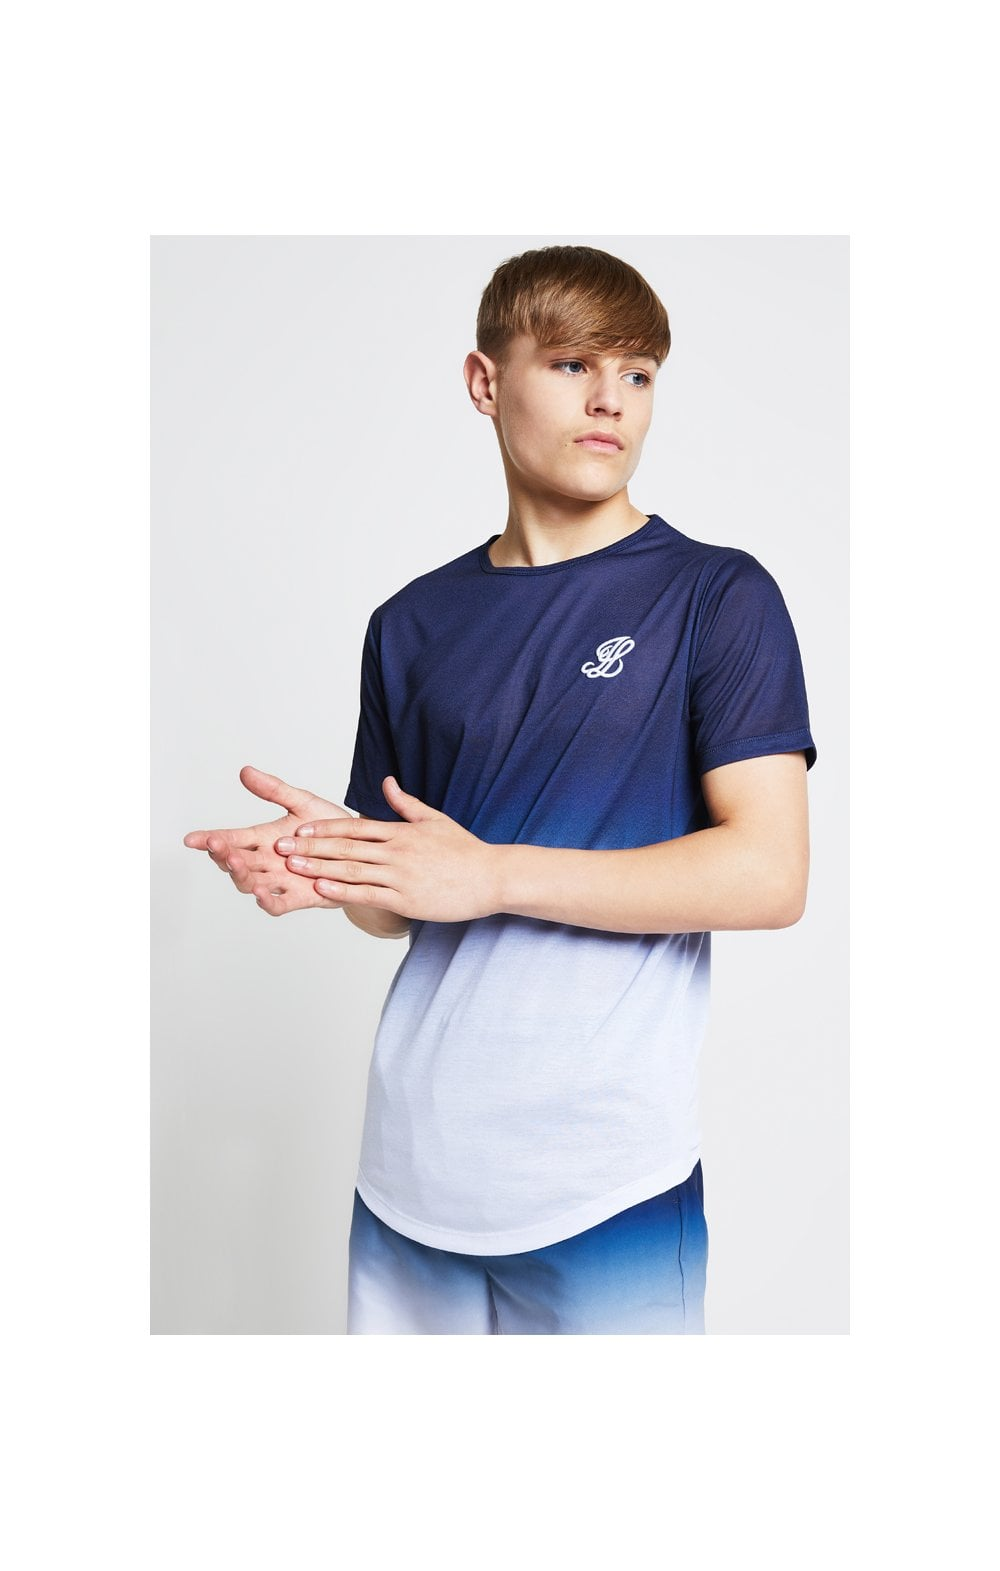 Illusive London Fade Tee - Navy & White (3)